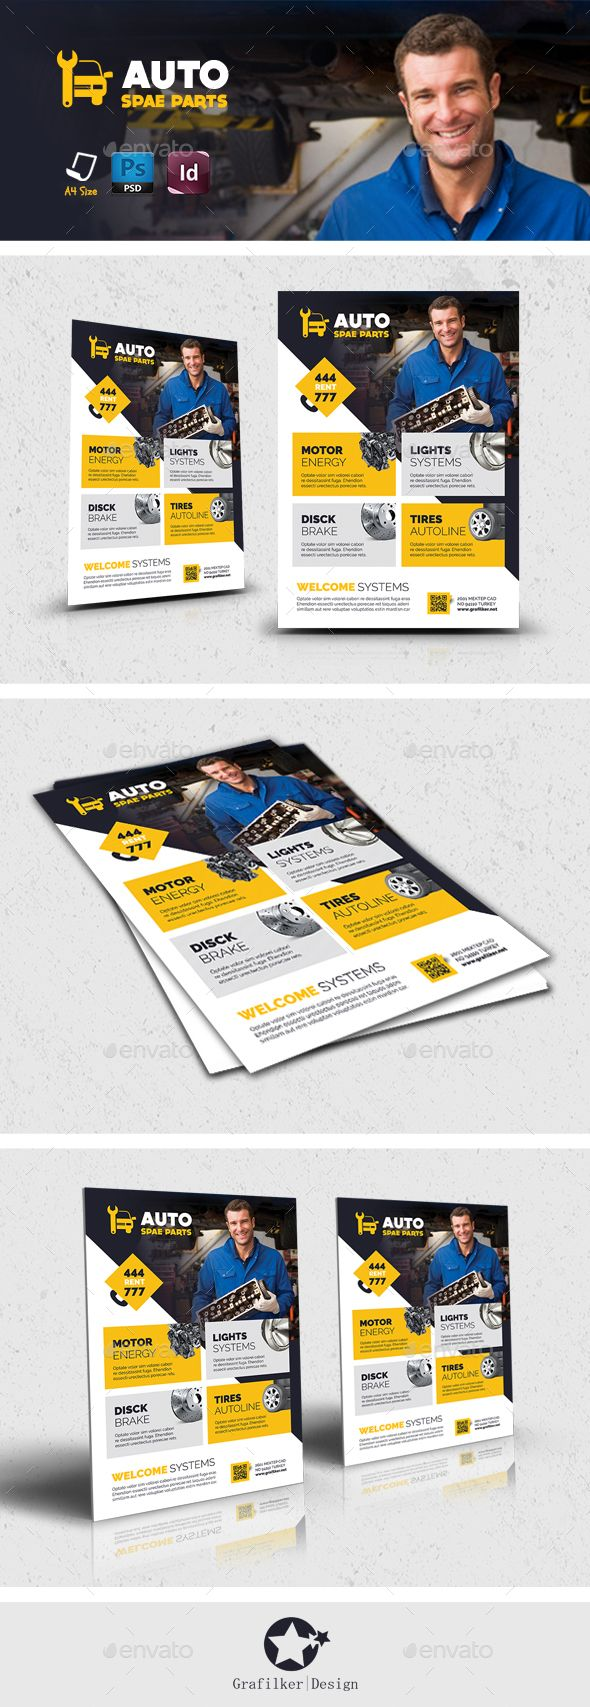 Auto Spare Part Flyer Templates PSD #design Download: http://graphicriver.net/item/auto-spare-part-flyer-templates/13106098?ref=ksioks